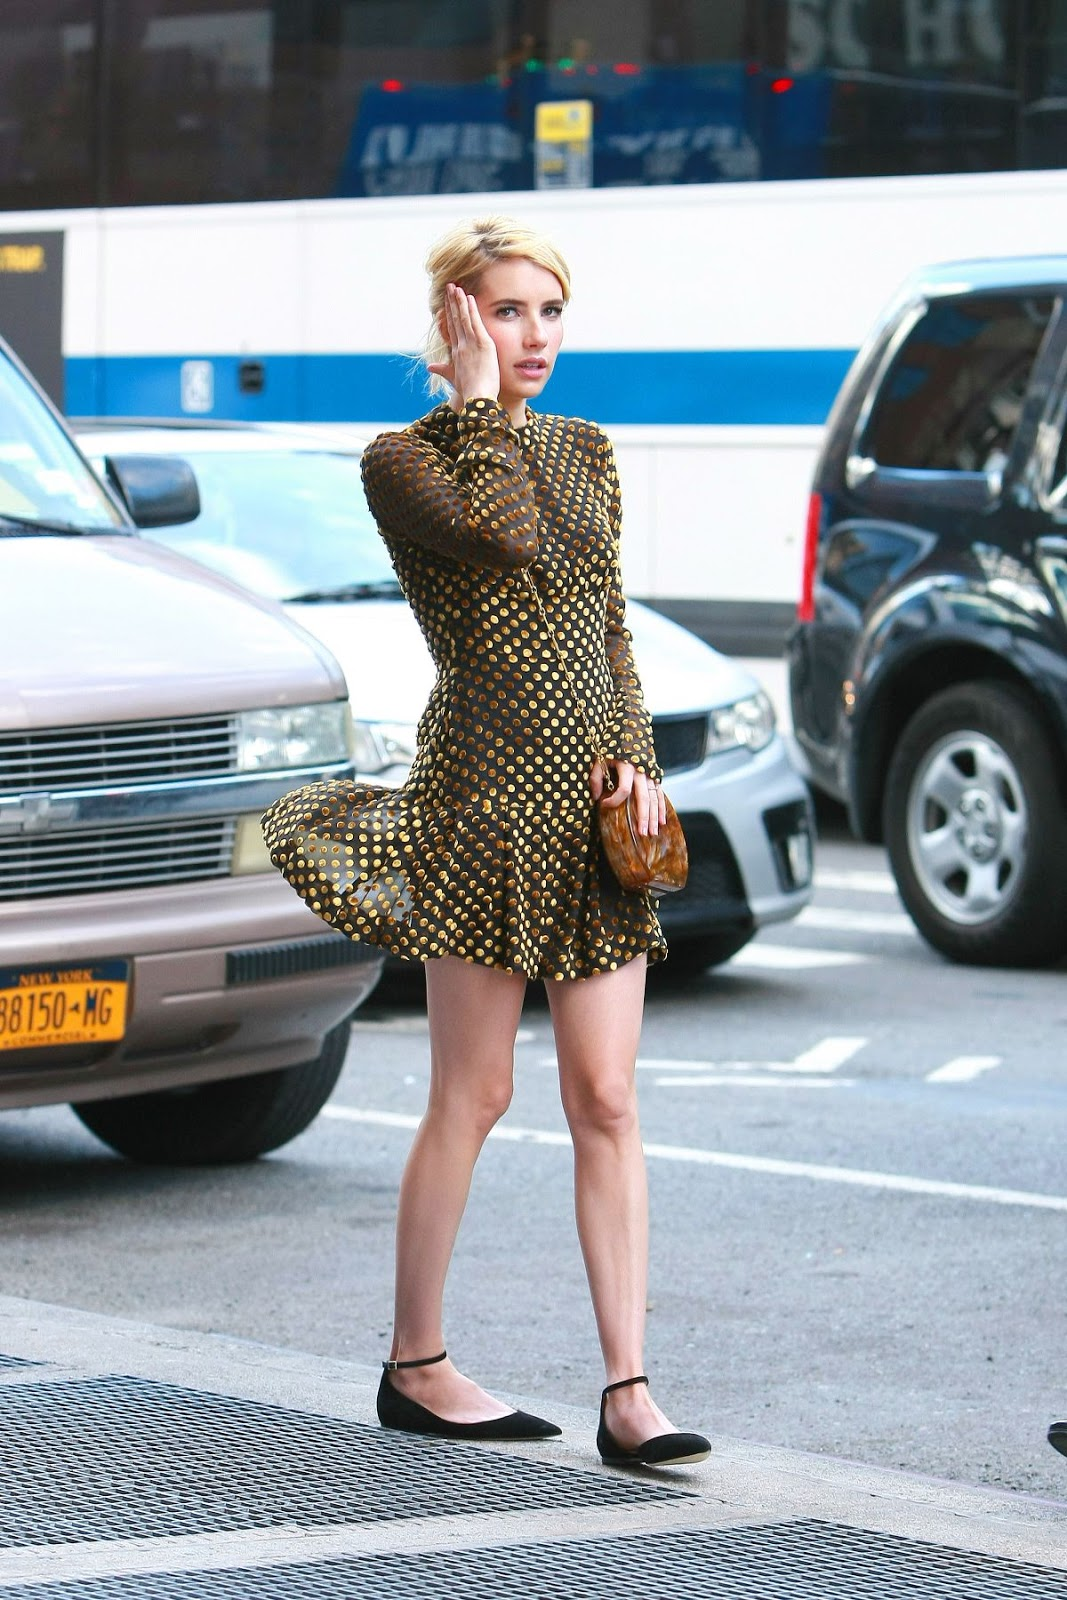 'Nerve' actress Emma Roberts out in New York City